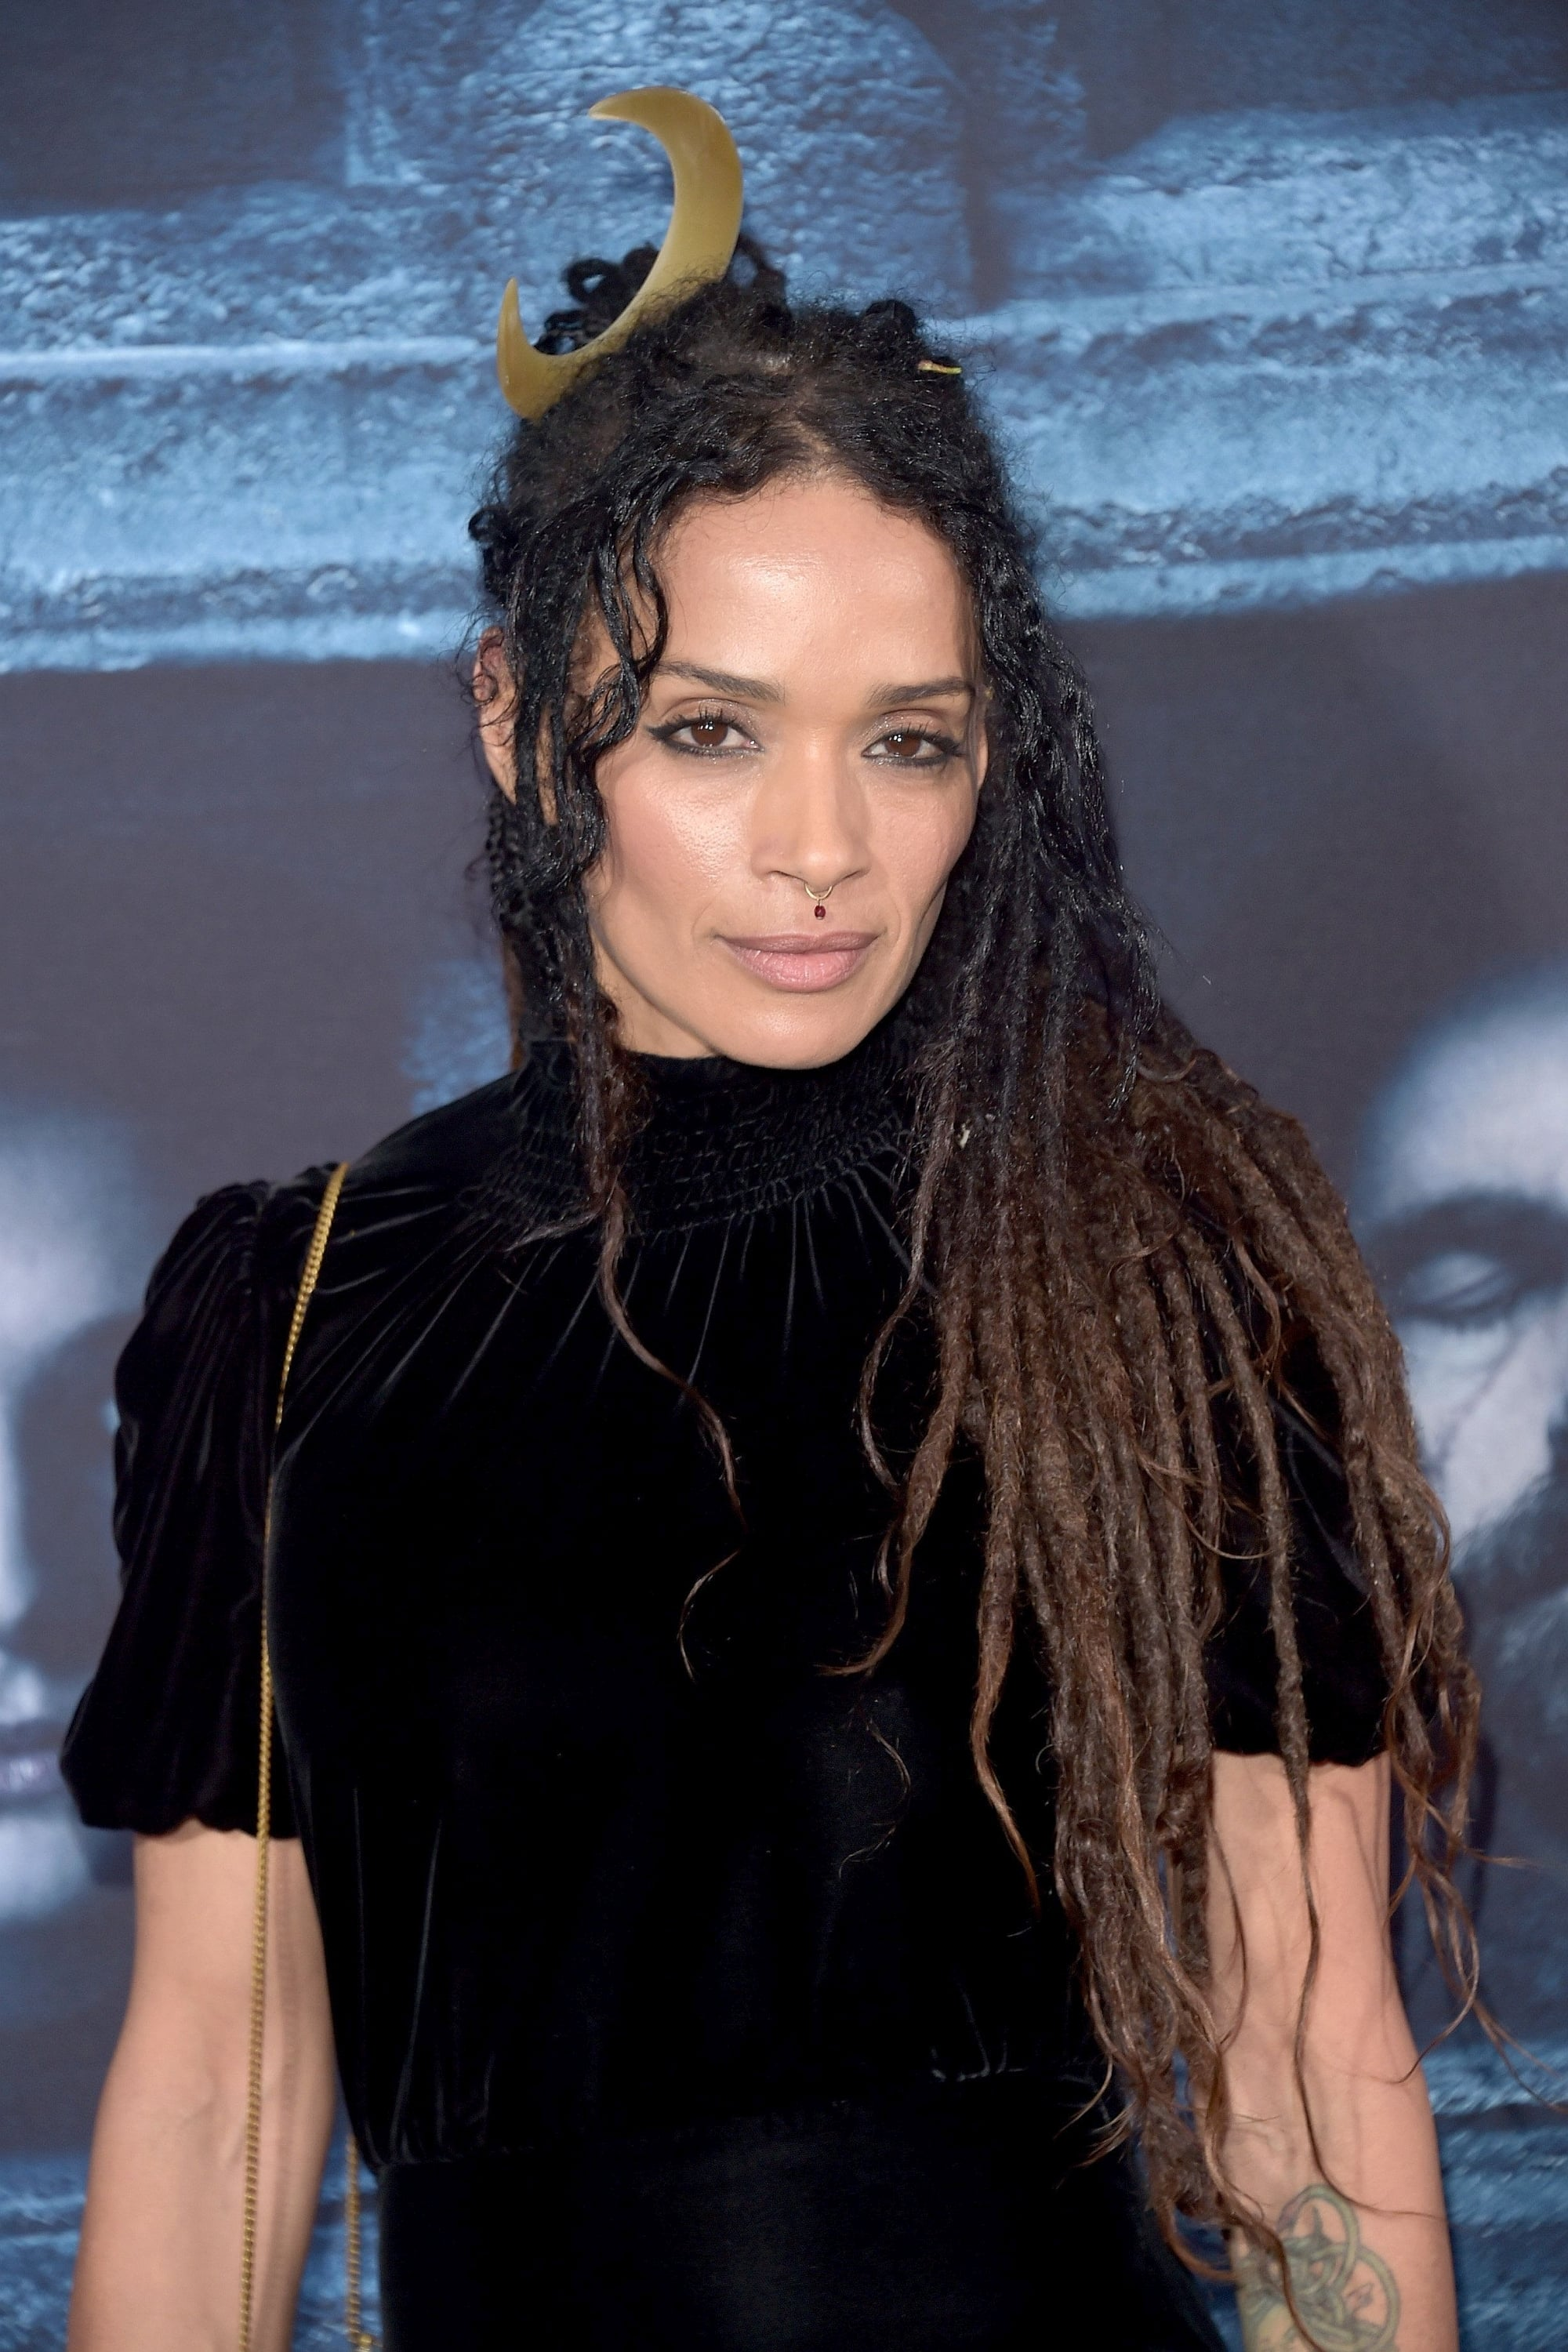 Lisa Bonet Profile Images The Movie Database Tmdb